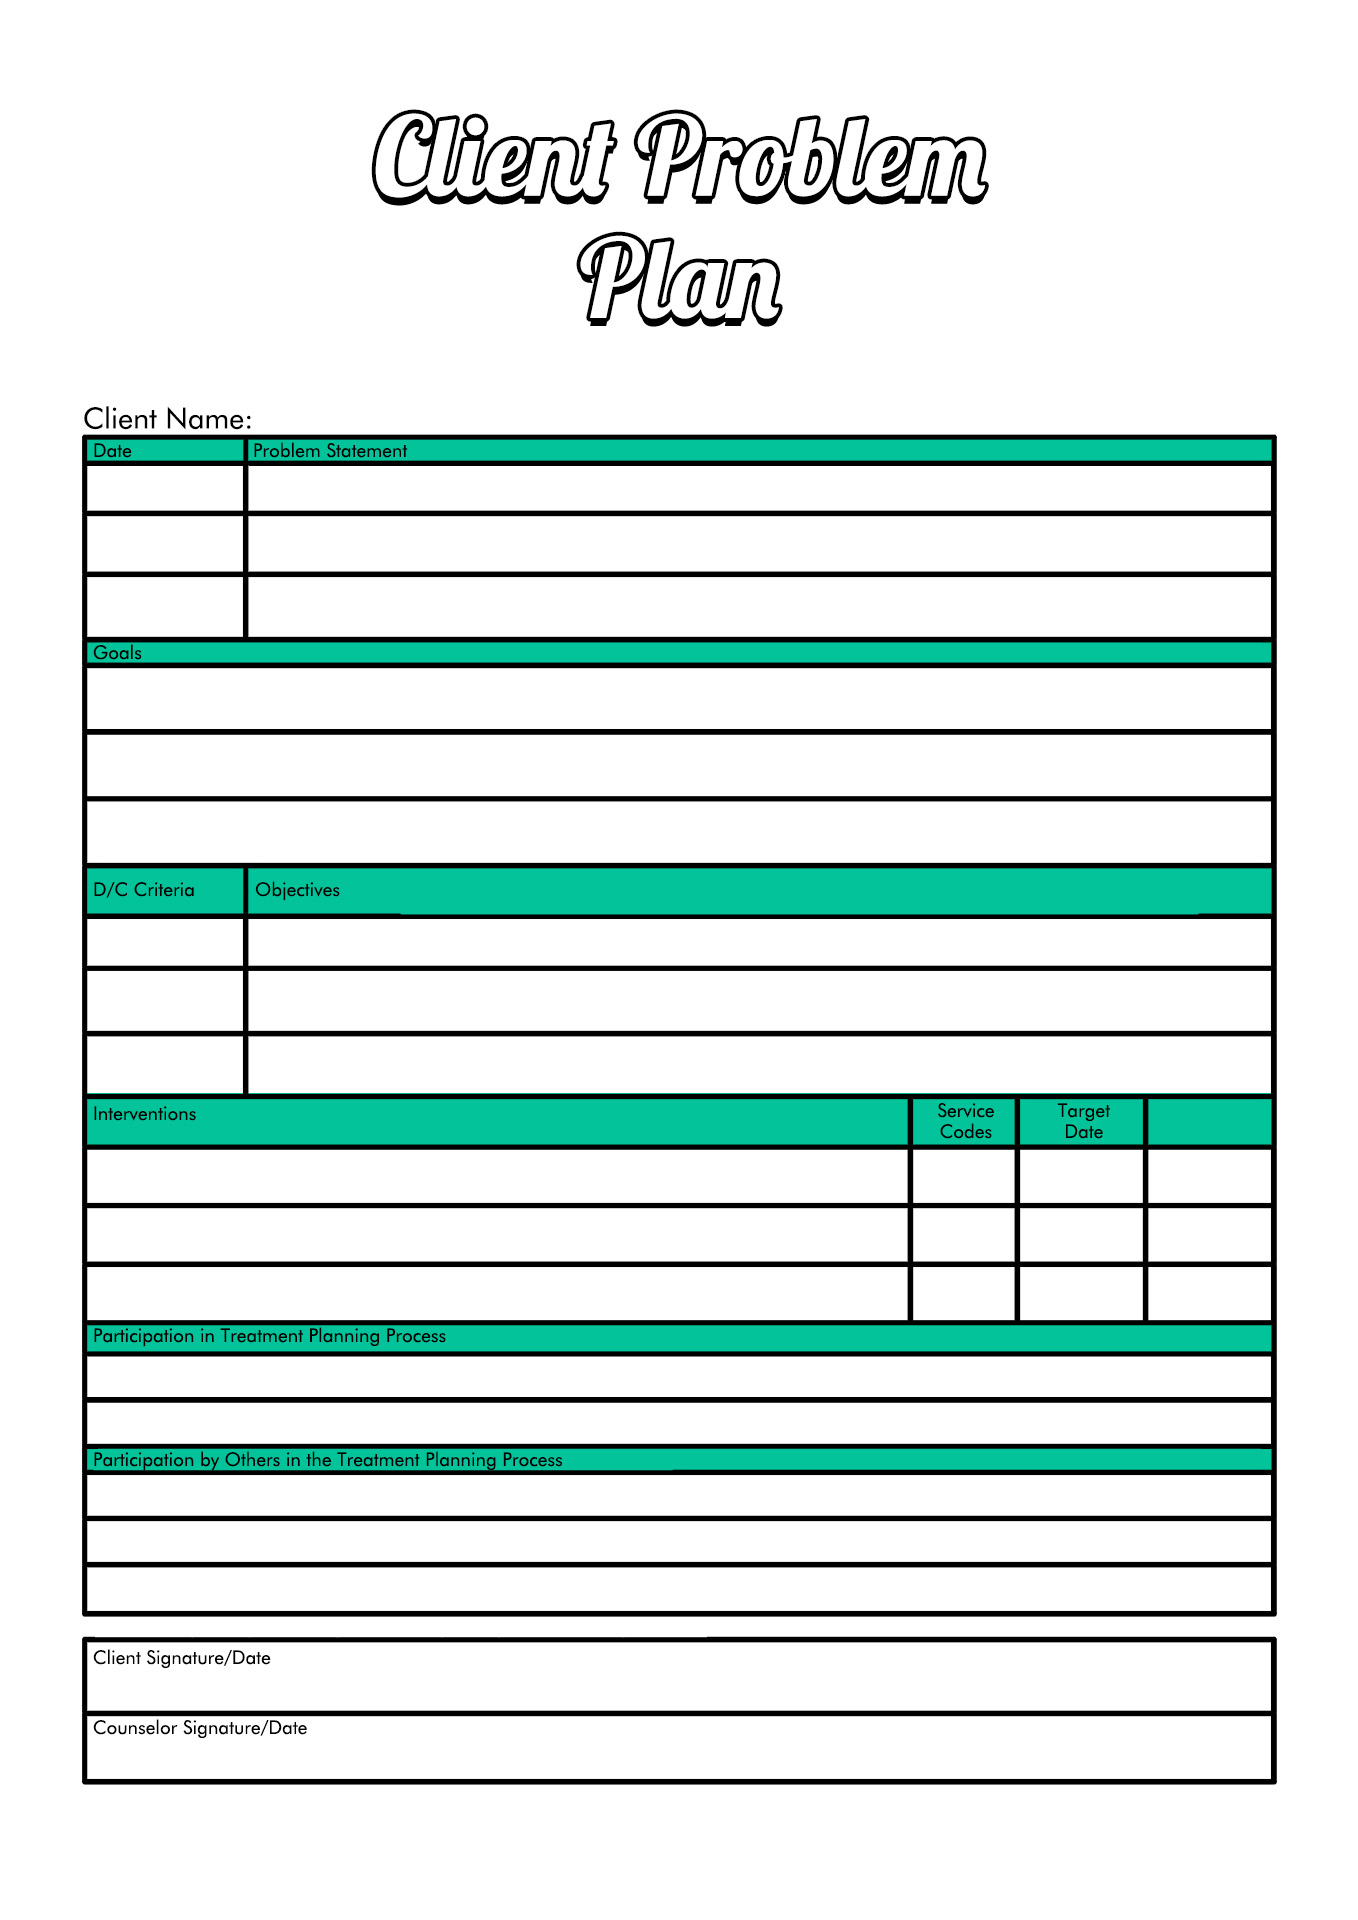 Alcohol Abuse Treatment Plan Worksheet